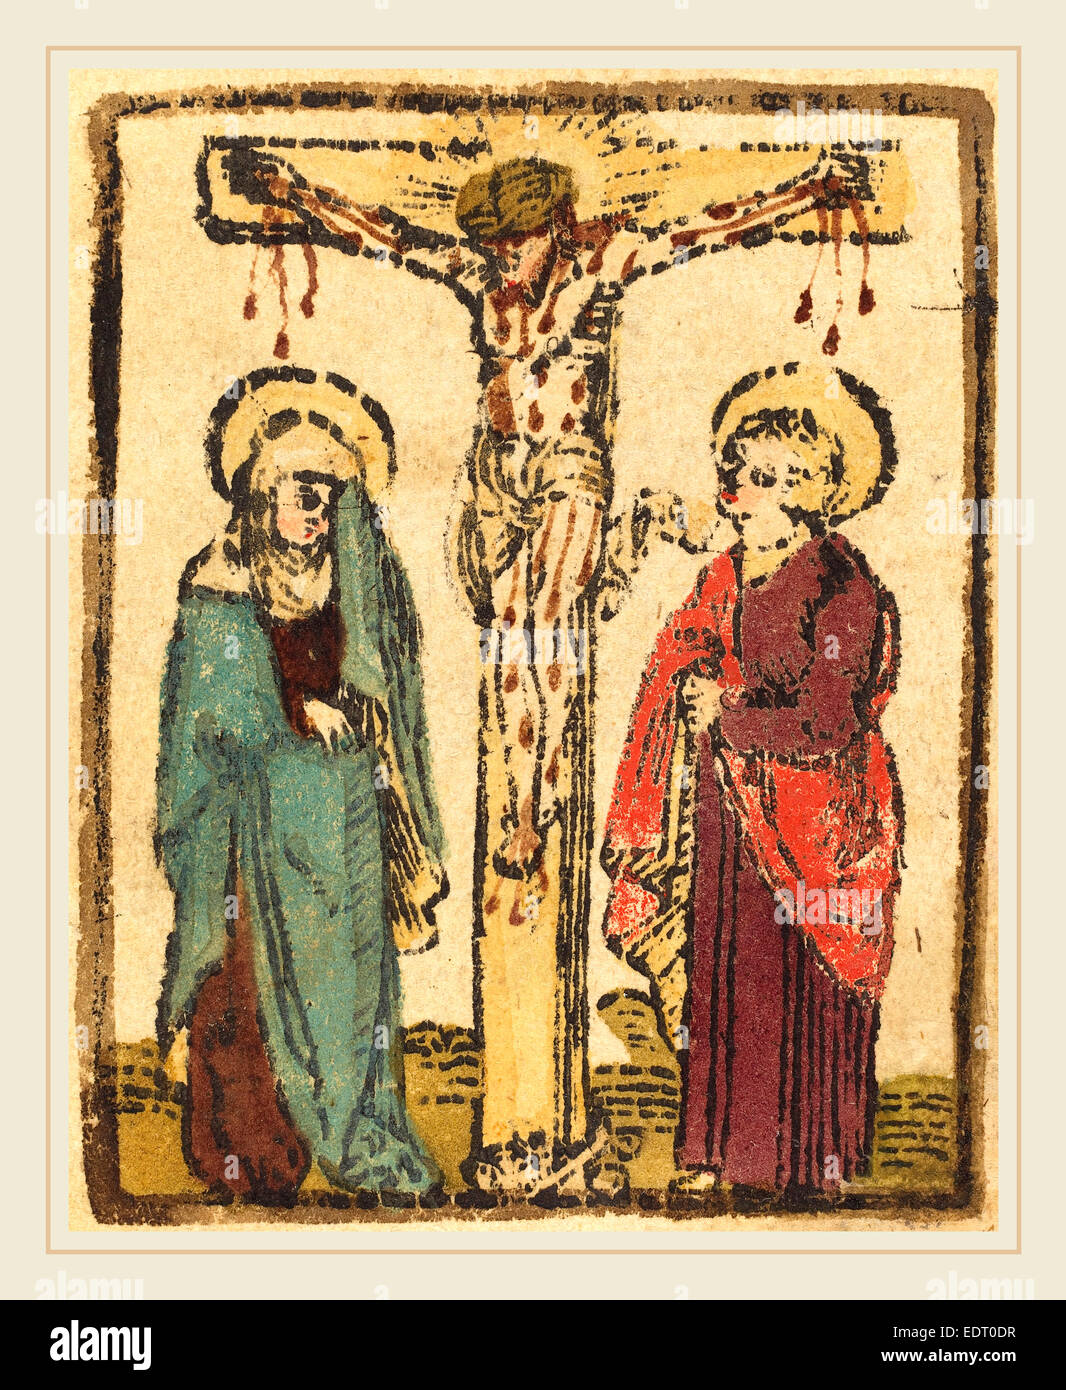 German 15th Century, Christ on the Cross, c. 1490-1500, woodcut,  hand-colored in blue-green, vermilion, lavender, brown, olive